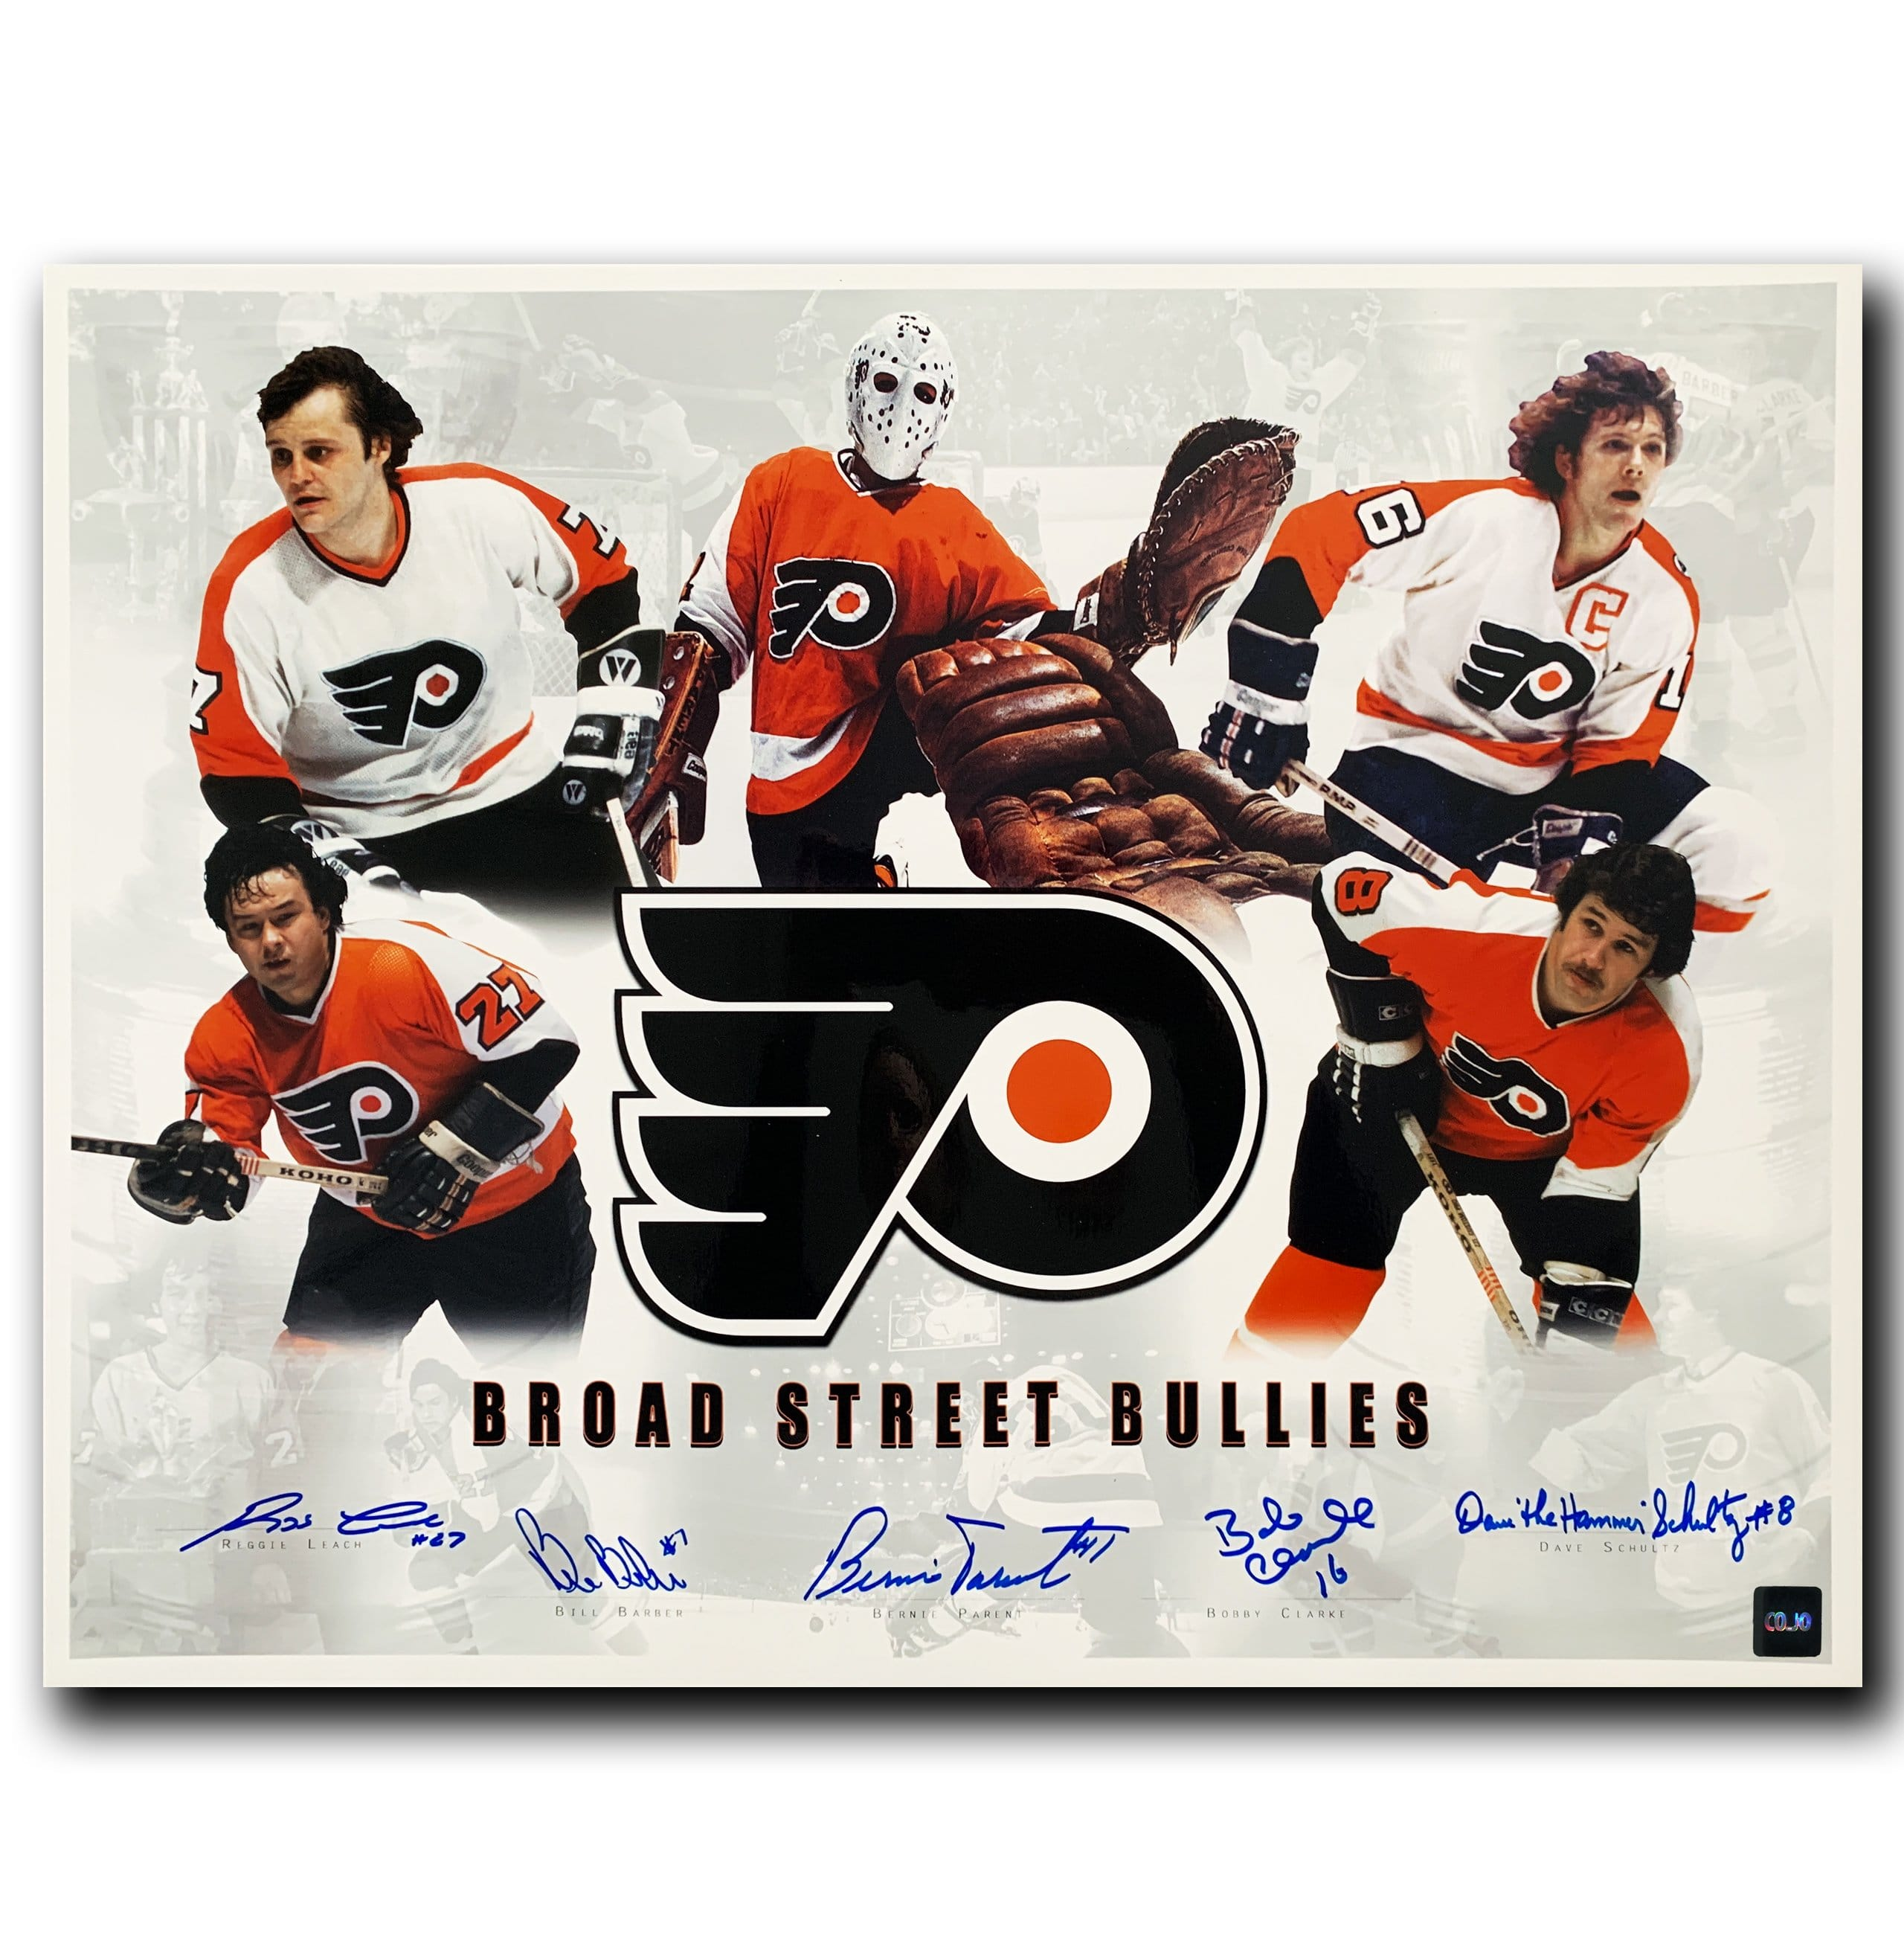 Broad Street Bullies Philadelphia Flyers Autographed Limited Edition 16x20 Photo CoJo Sport Collectables Inc.